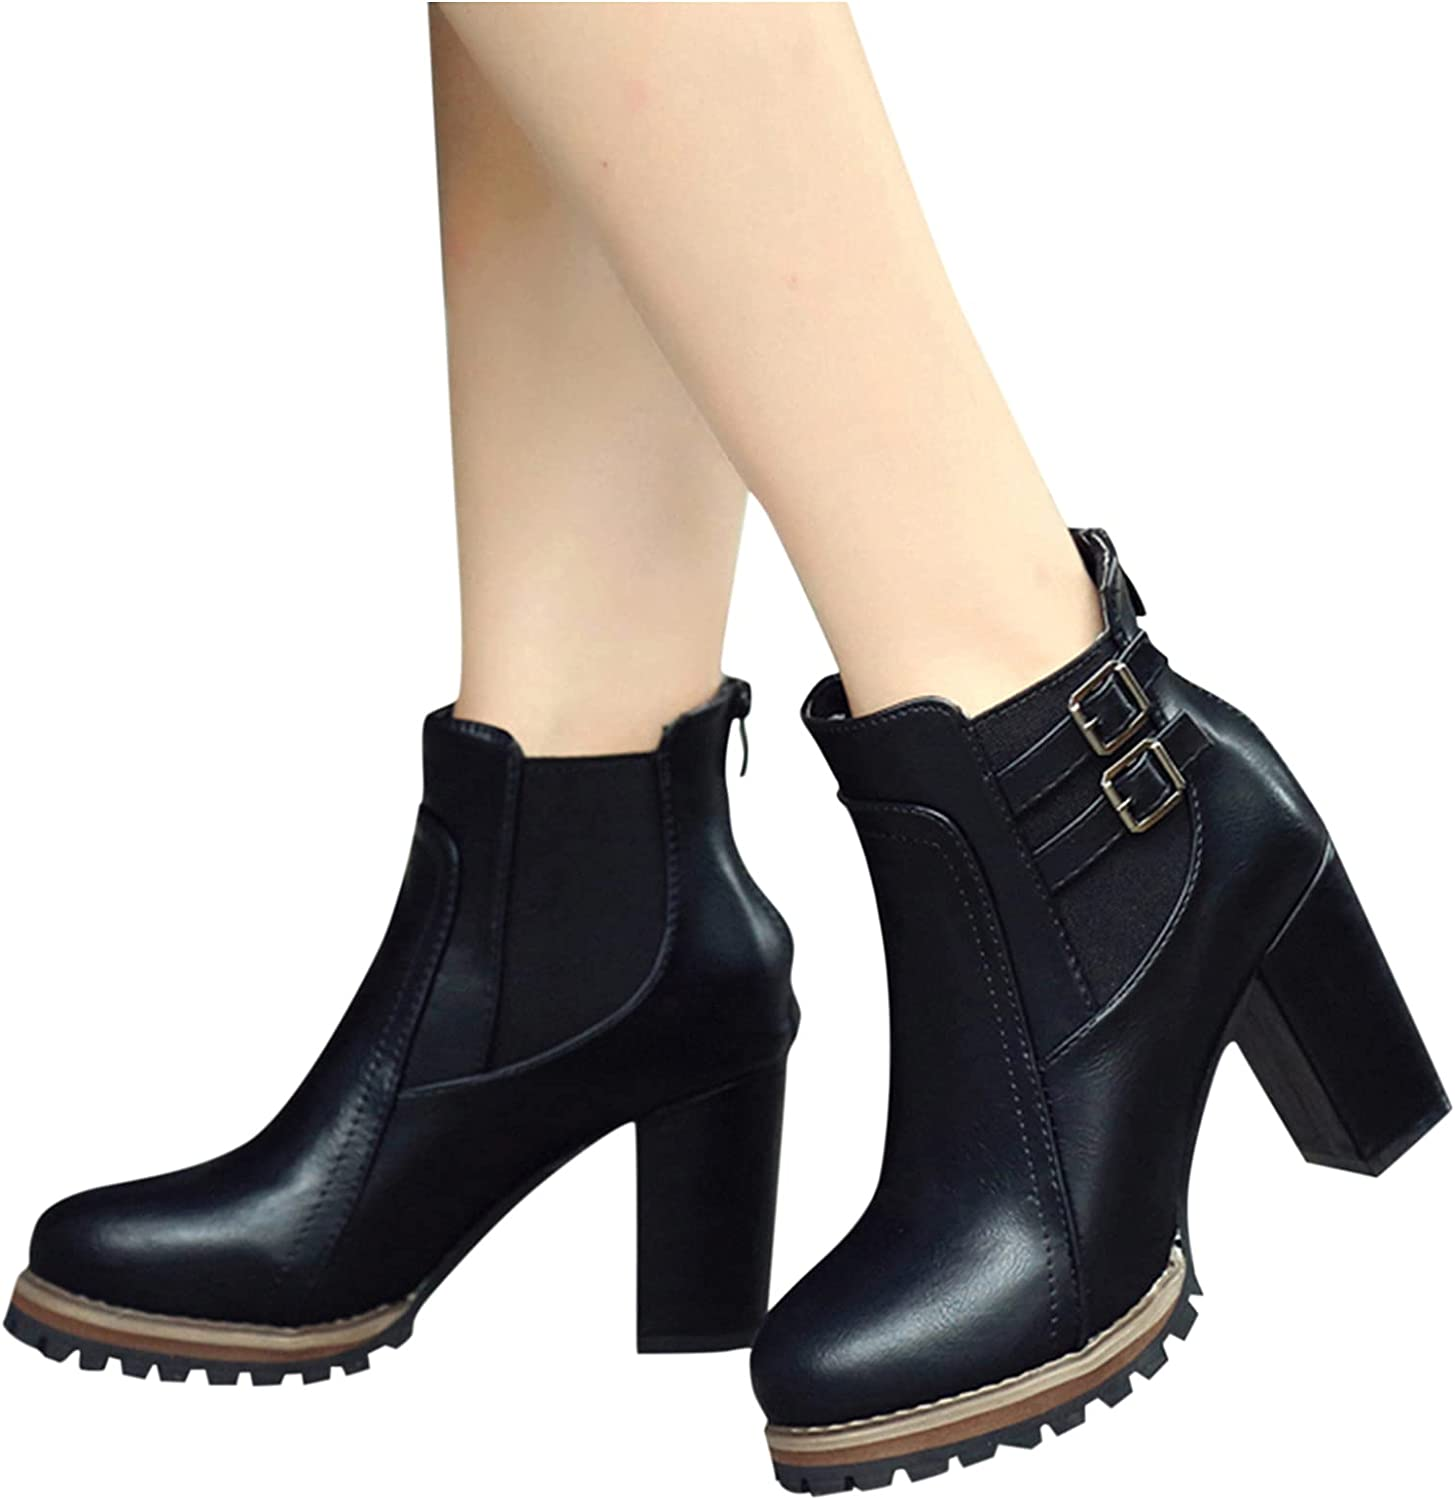 soyienma Boots for Women,Womens Pointed-Toe Platform Boots Zipper Up Buckle Boots Ankle Short Booties Casual Fashion Boots